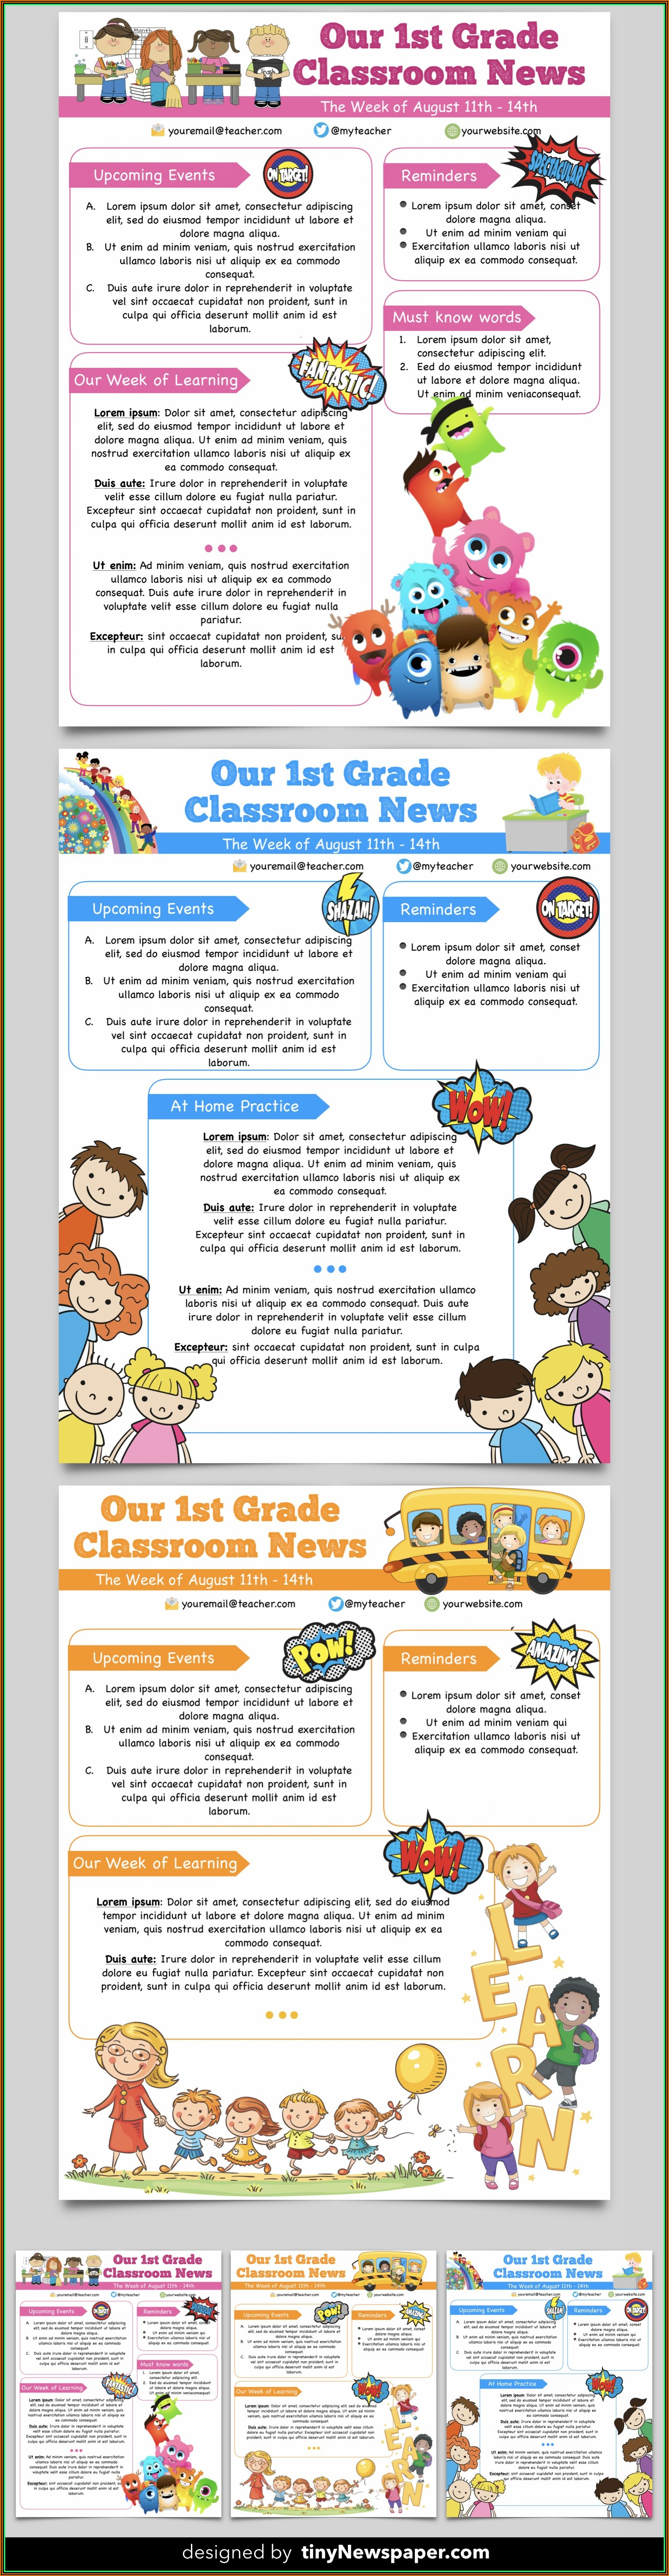 Christian Newsletter Templates Free Download